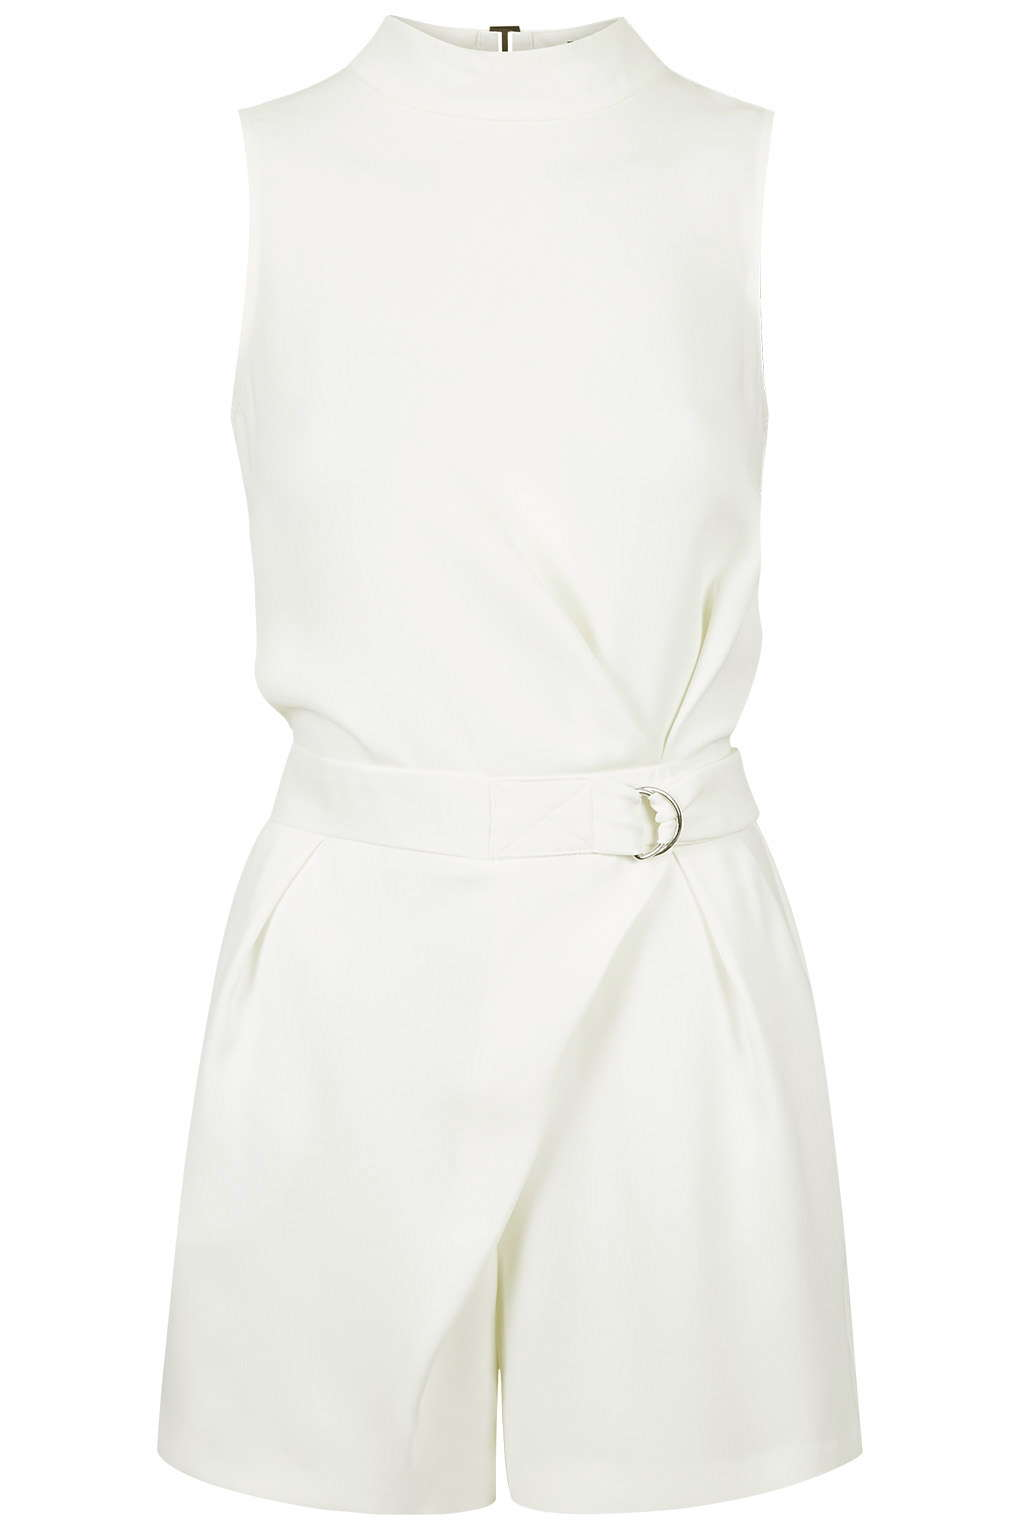 f1b88849472512 I bought a size 10 which is a good fit - and cannot wait to wear it with  jeans or a playsuit.